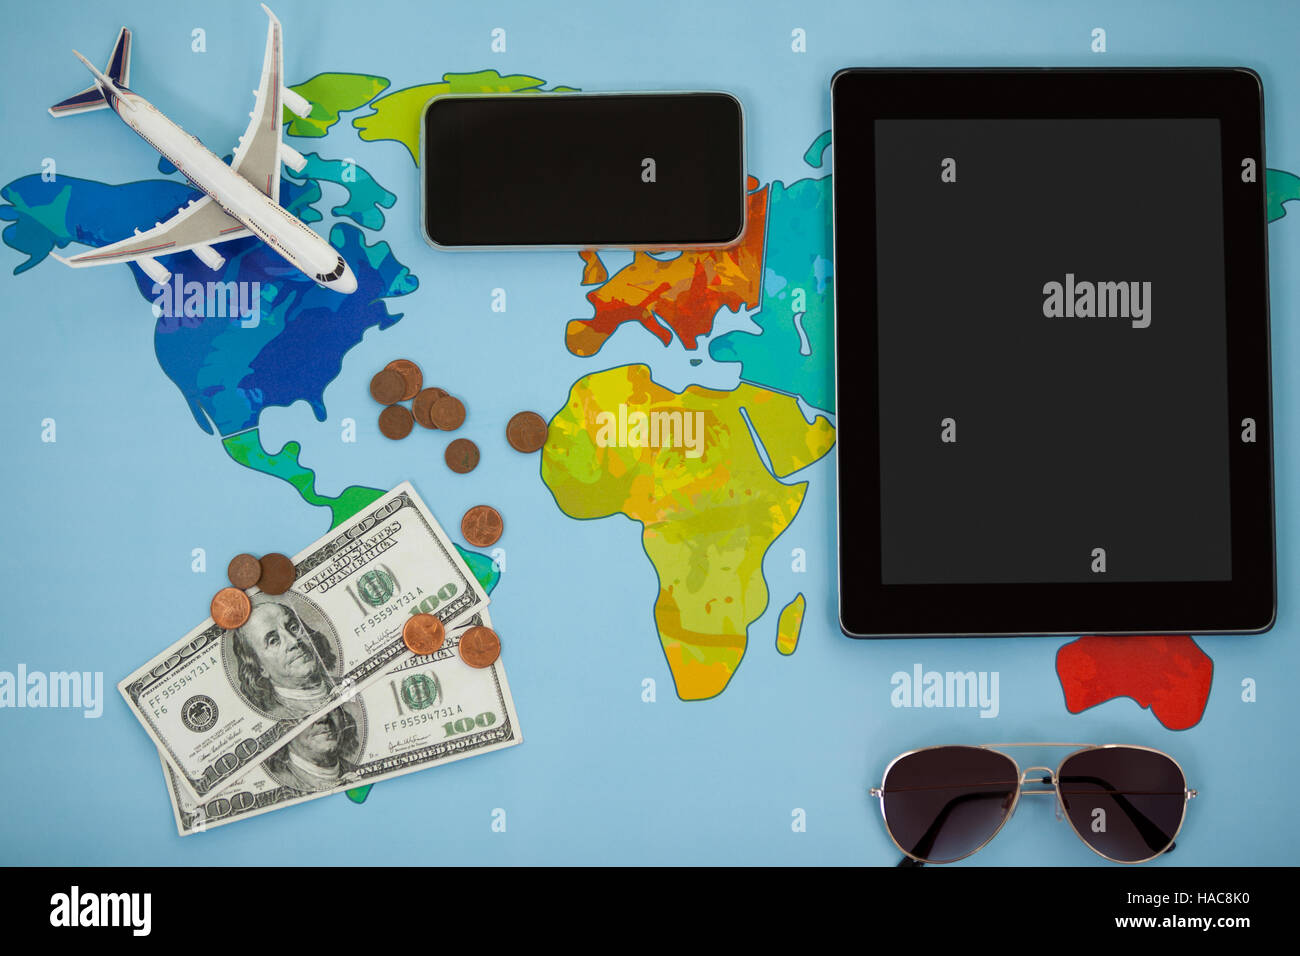 Electronic gadgets, sunglasses, dollar and airplane model - Stock Image